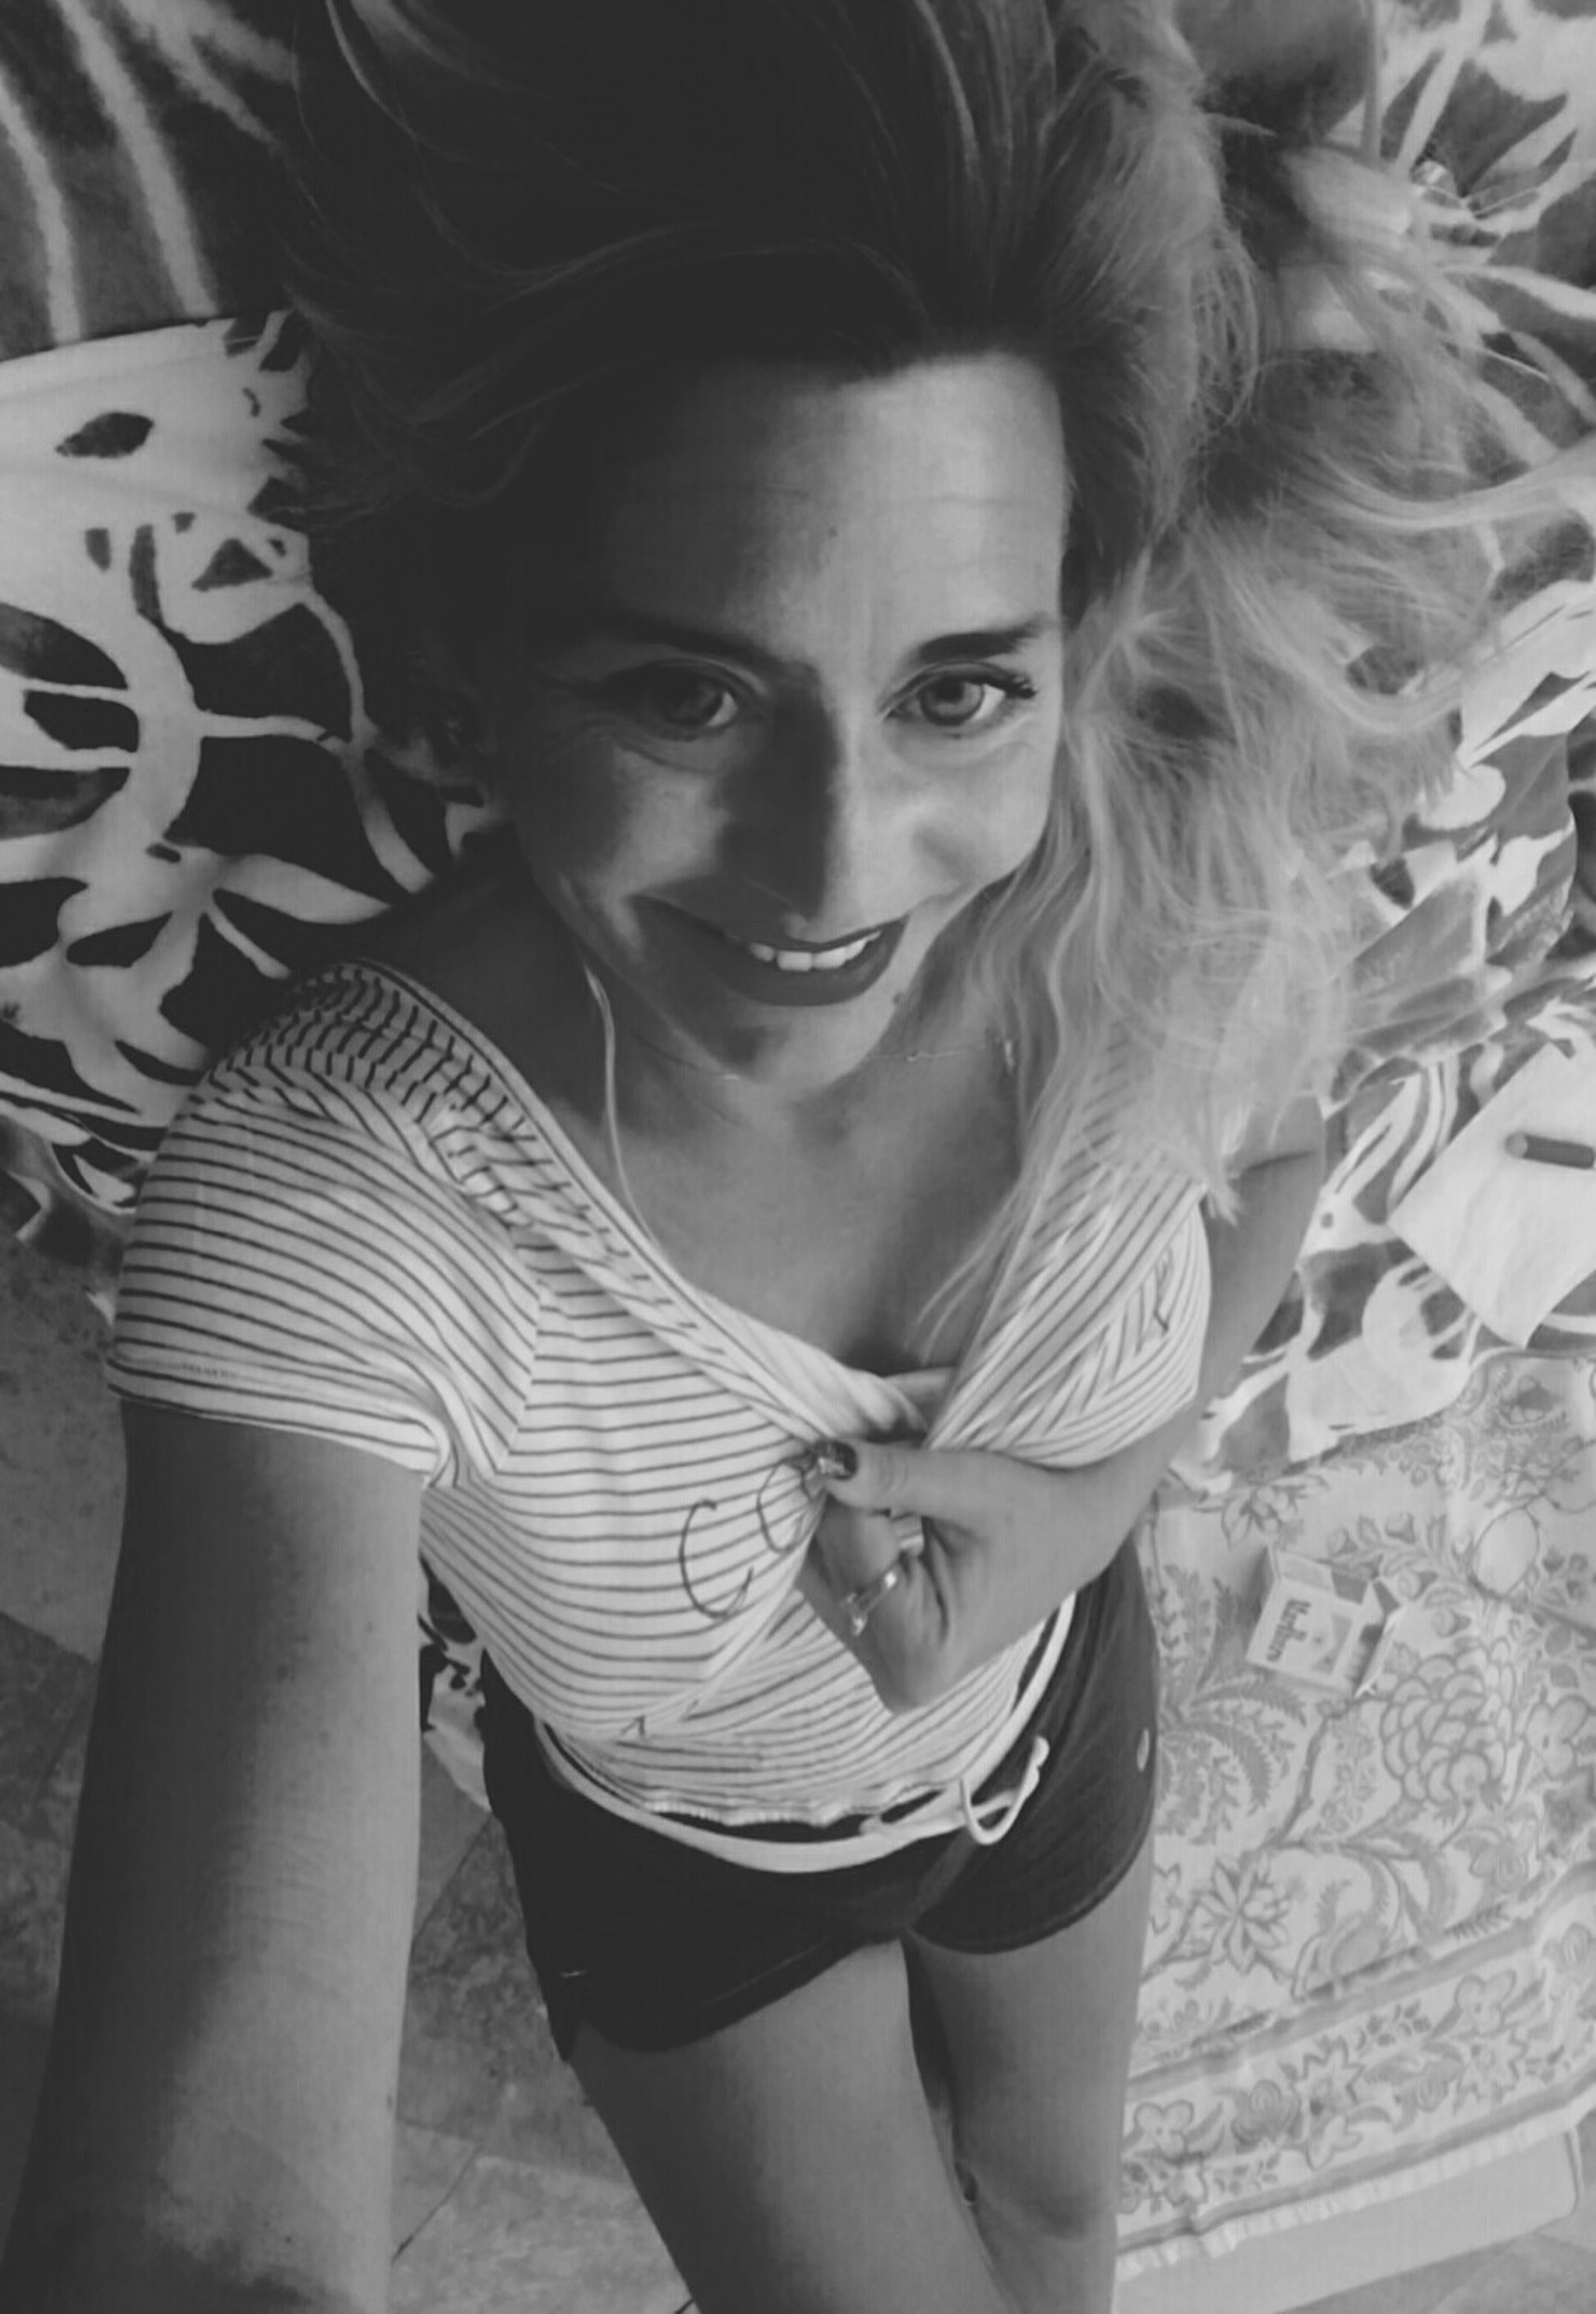 Perfect Timing Perfectblackandwhite Blackandwhite Photography That's Me SharingmySmile HappySunday✌ Offandout Lots Of Love Make Magic Happen Share Your Adventure Womanselfie Youknowwhatimean